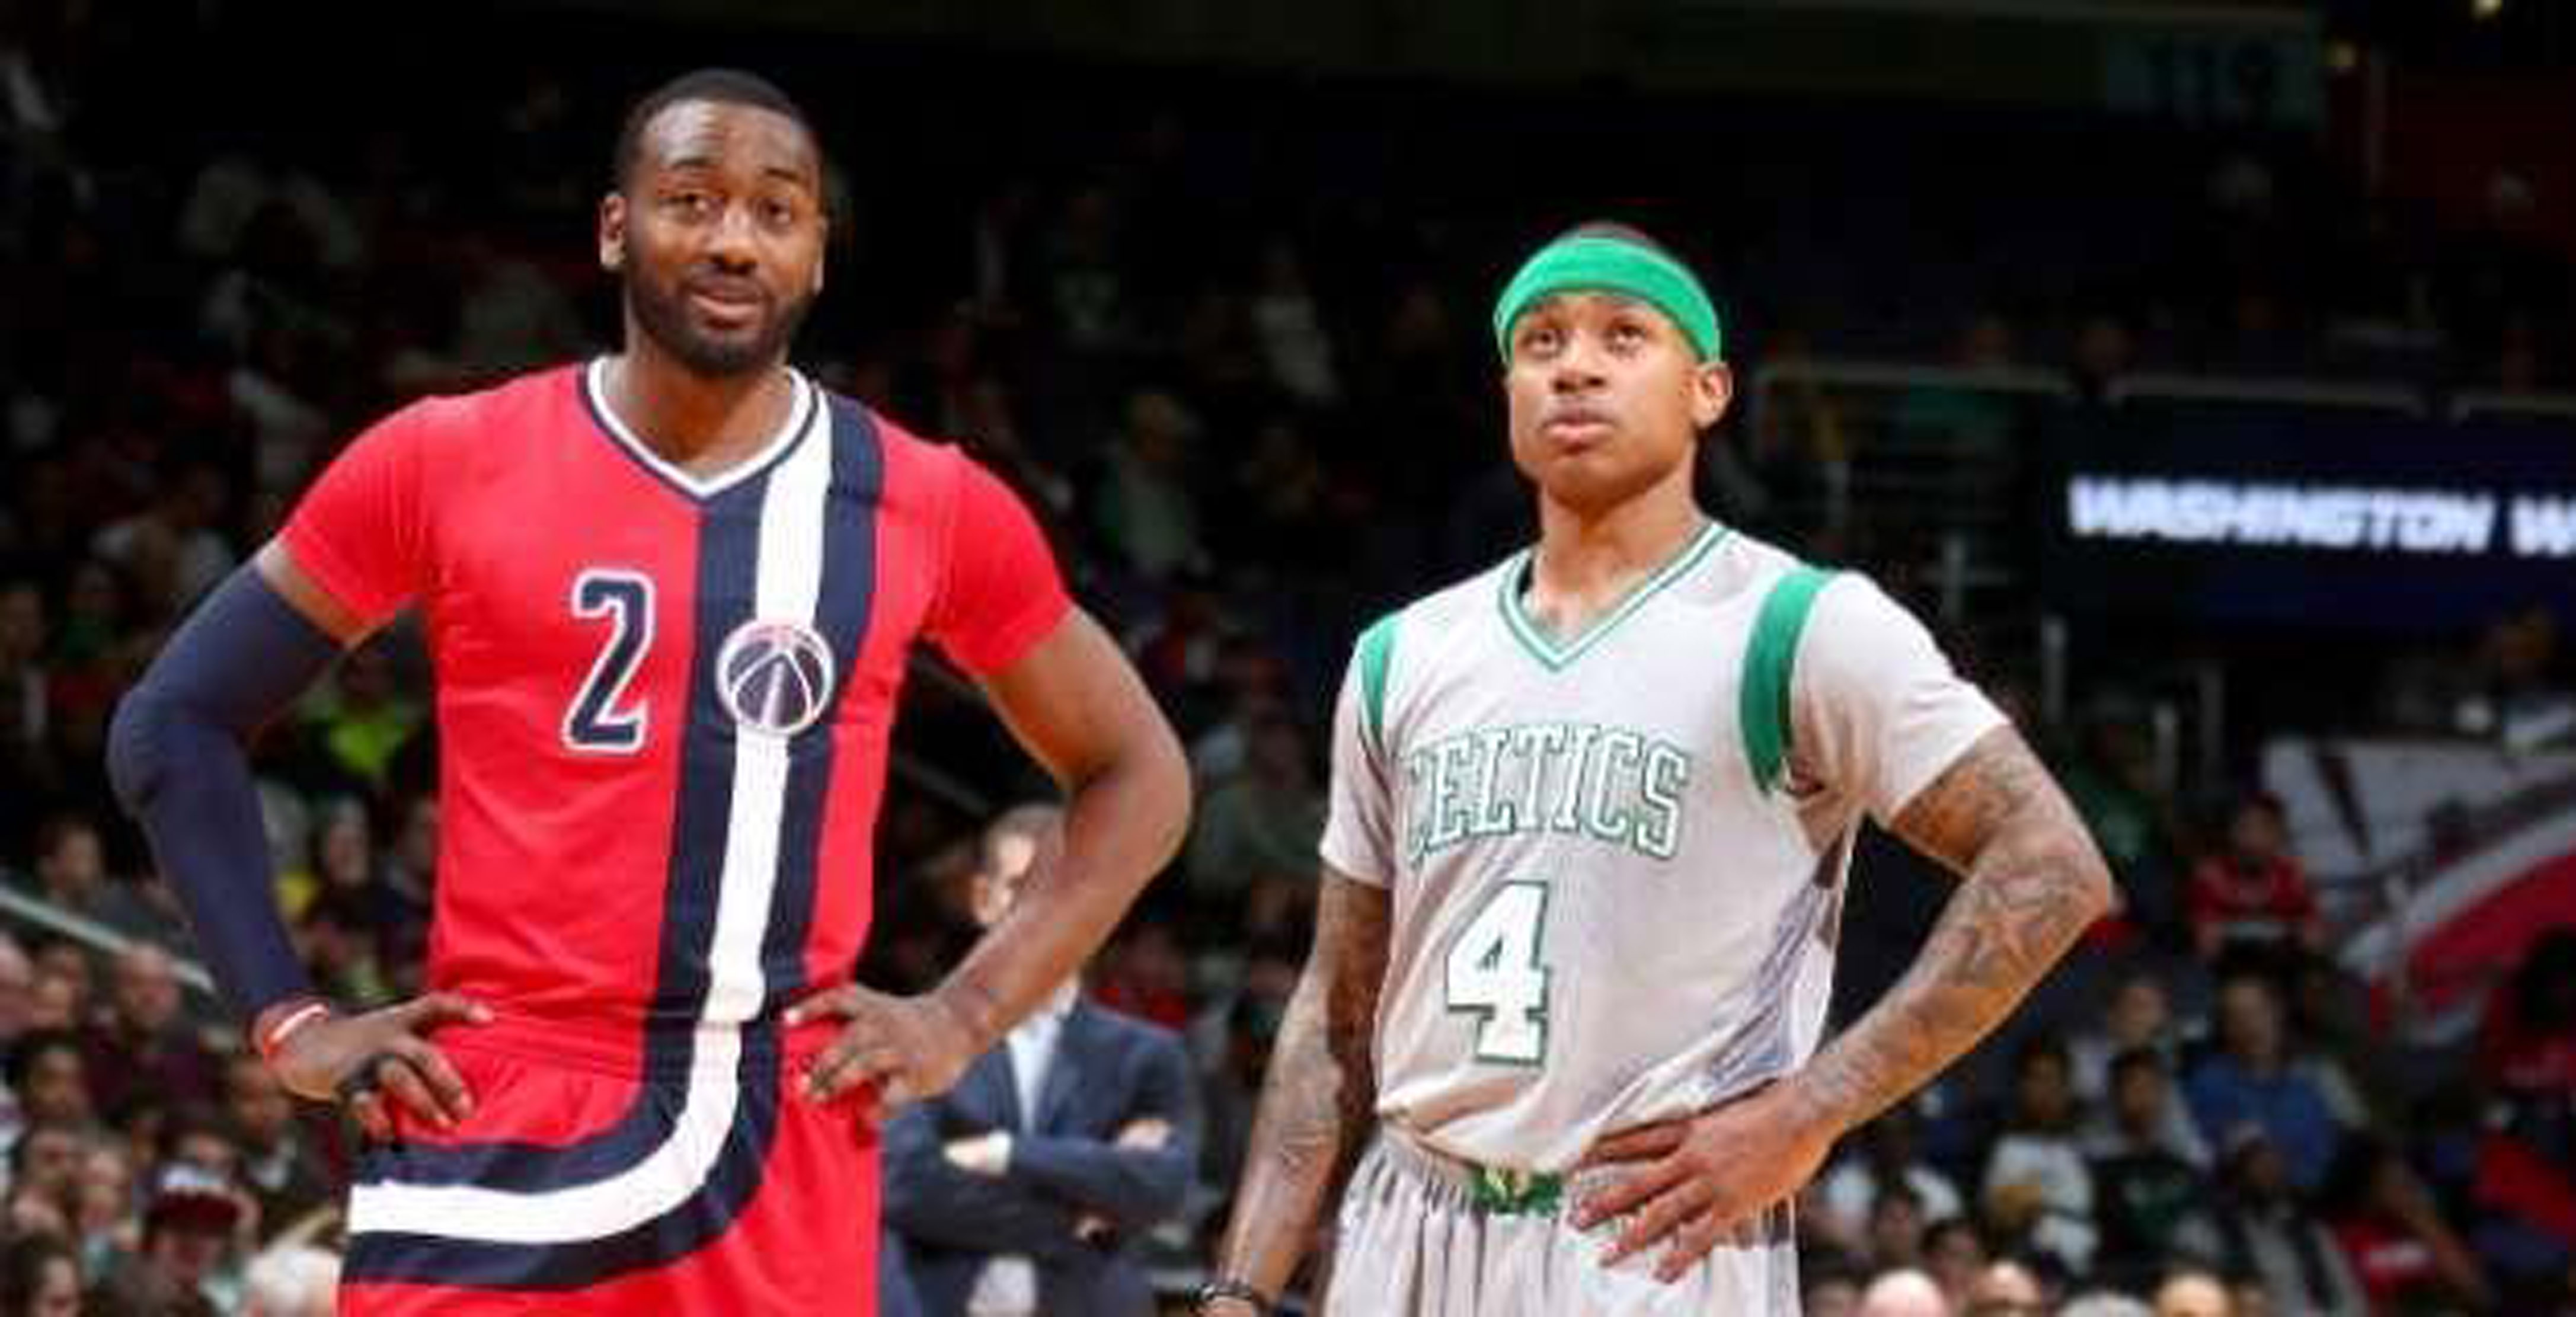 170429001618-john-wall-isaiah-thomas-boston-celtics-v-washington-wizards_mobile-t1_1.jpg